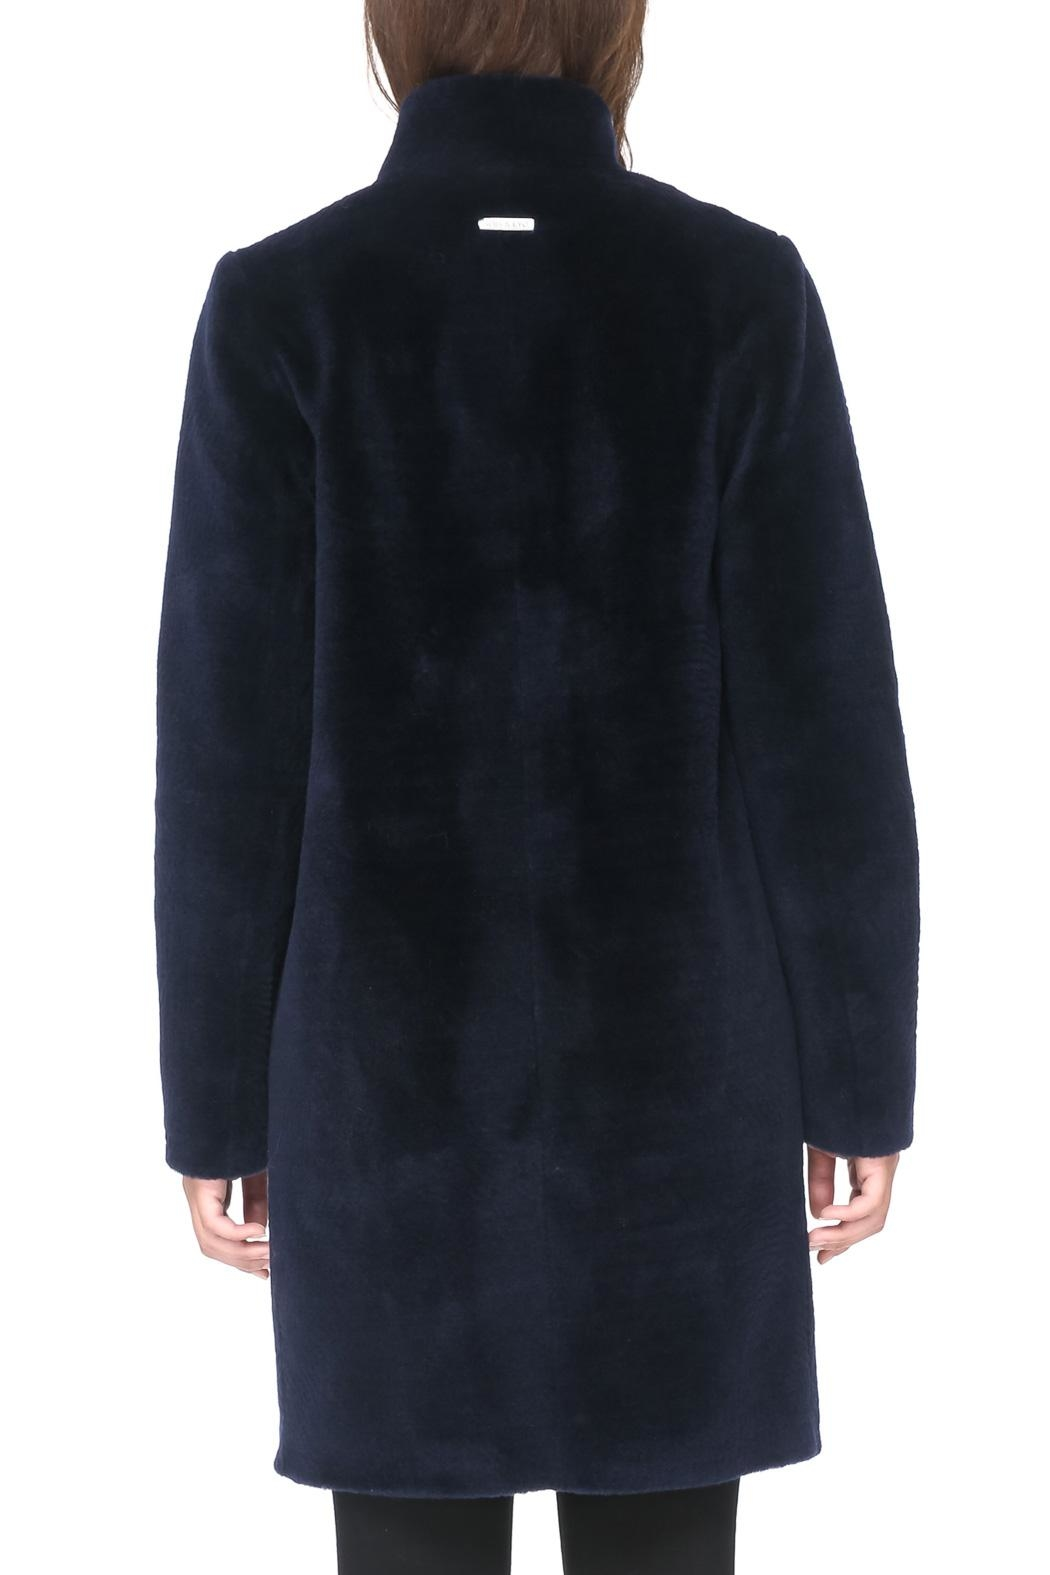 Soia & Kyo Marceline Wool Coat - Back Cropped Image